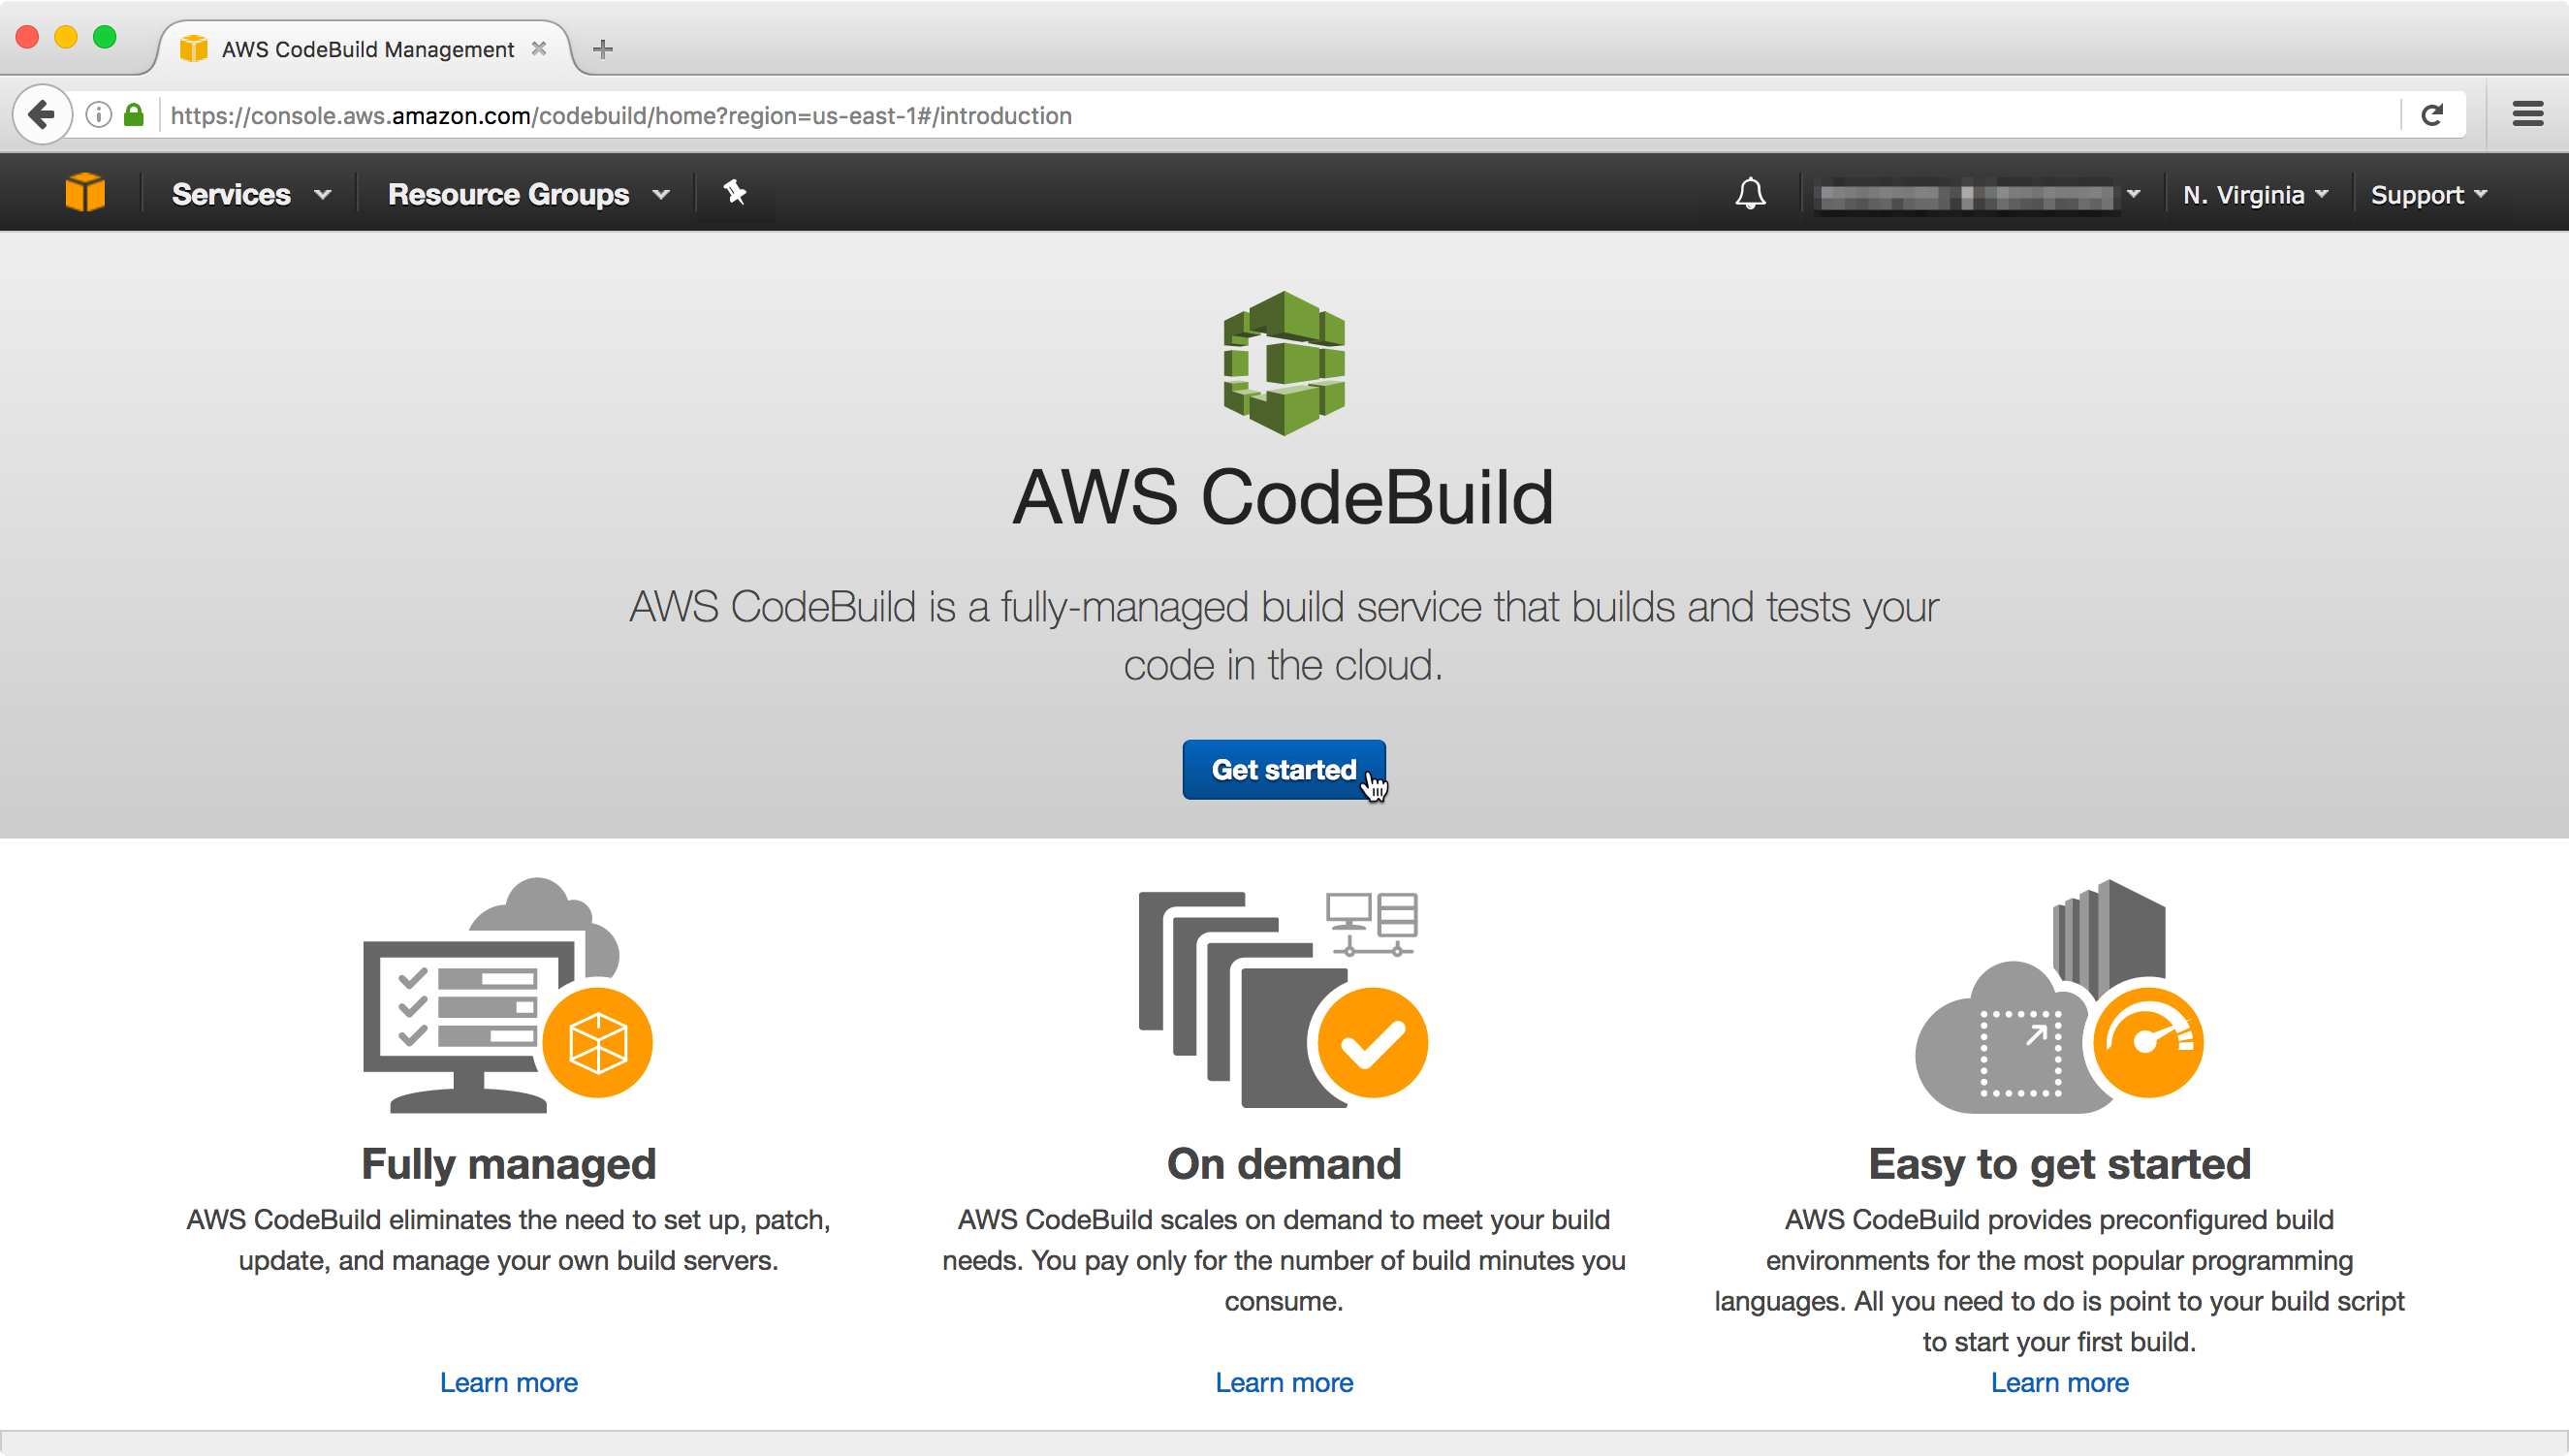 Getting started with AWS CodeBuild